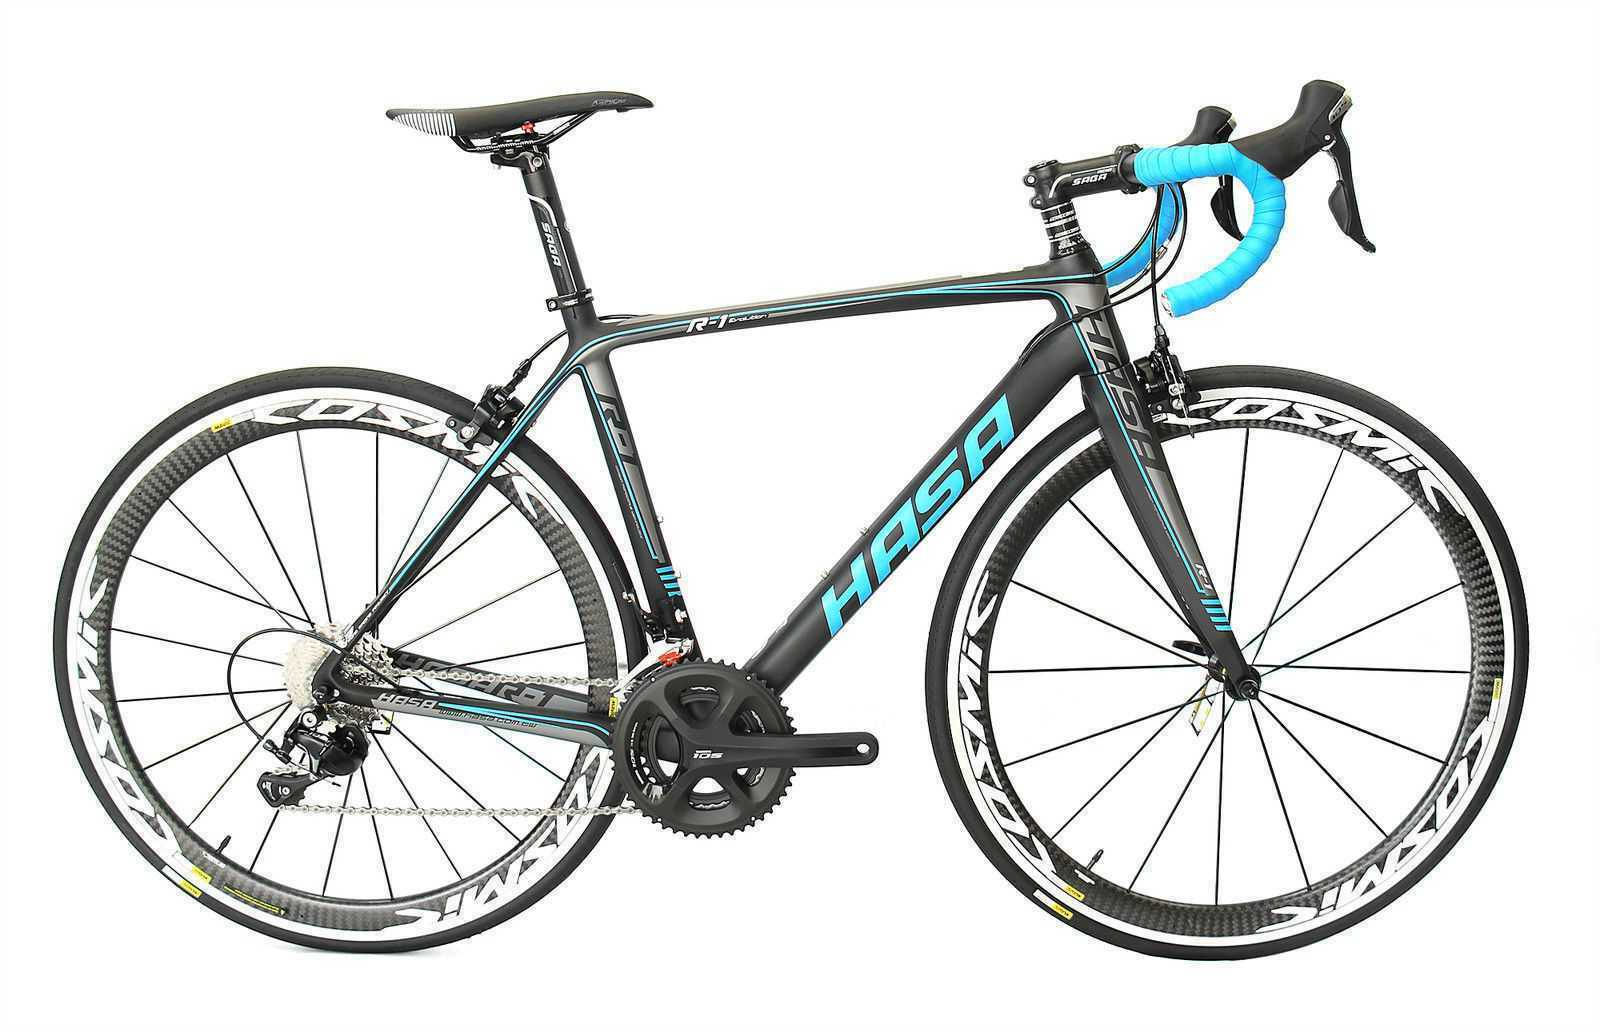 HASA R1 Shimano 105 with Mavic Cosmic  Wheelset Carbon Road Bike 53cm